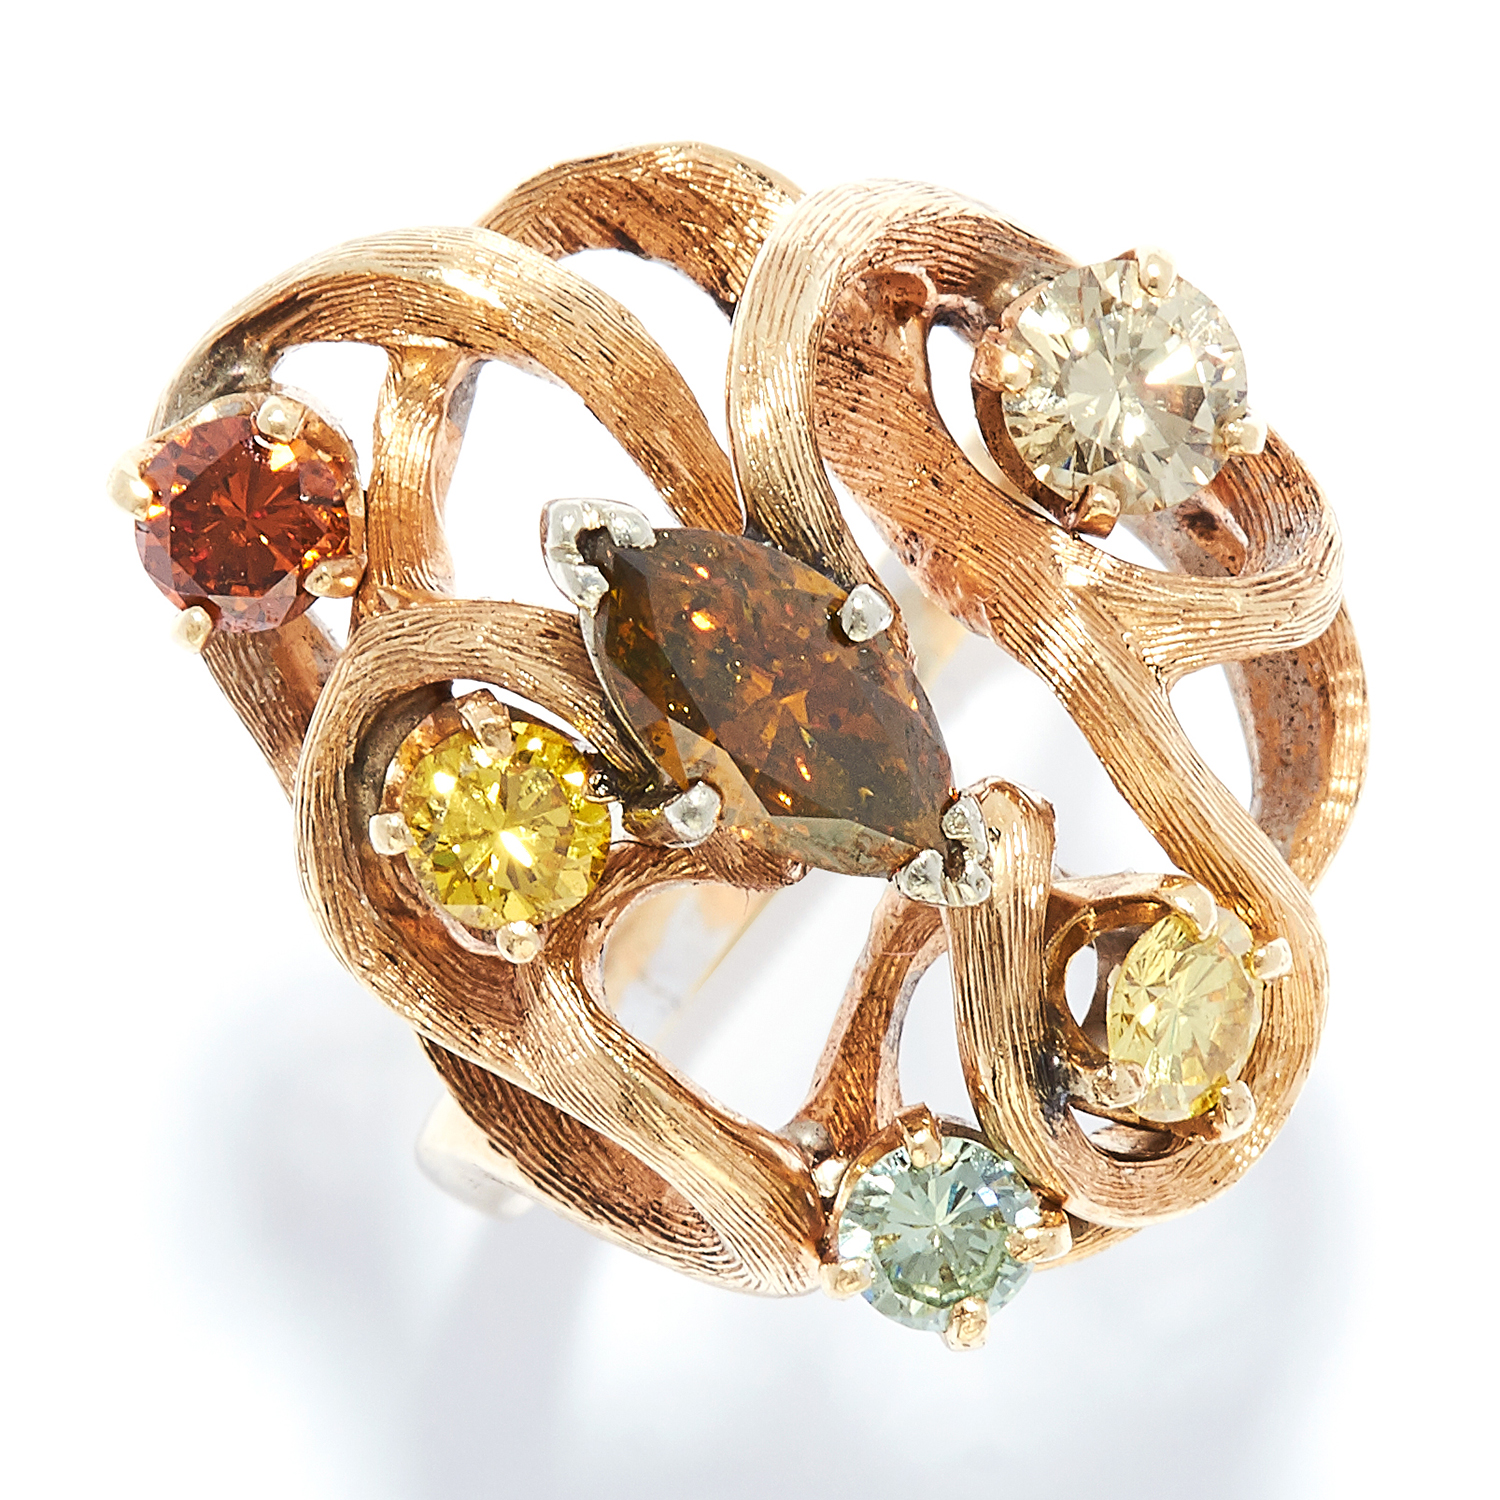 FANCY COLOUR DIAMOND RING in yellow gold, set with six marquise and round cut fancy colour